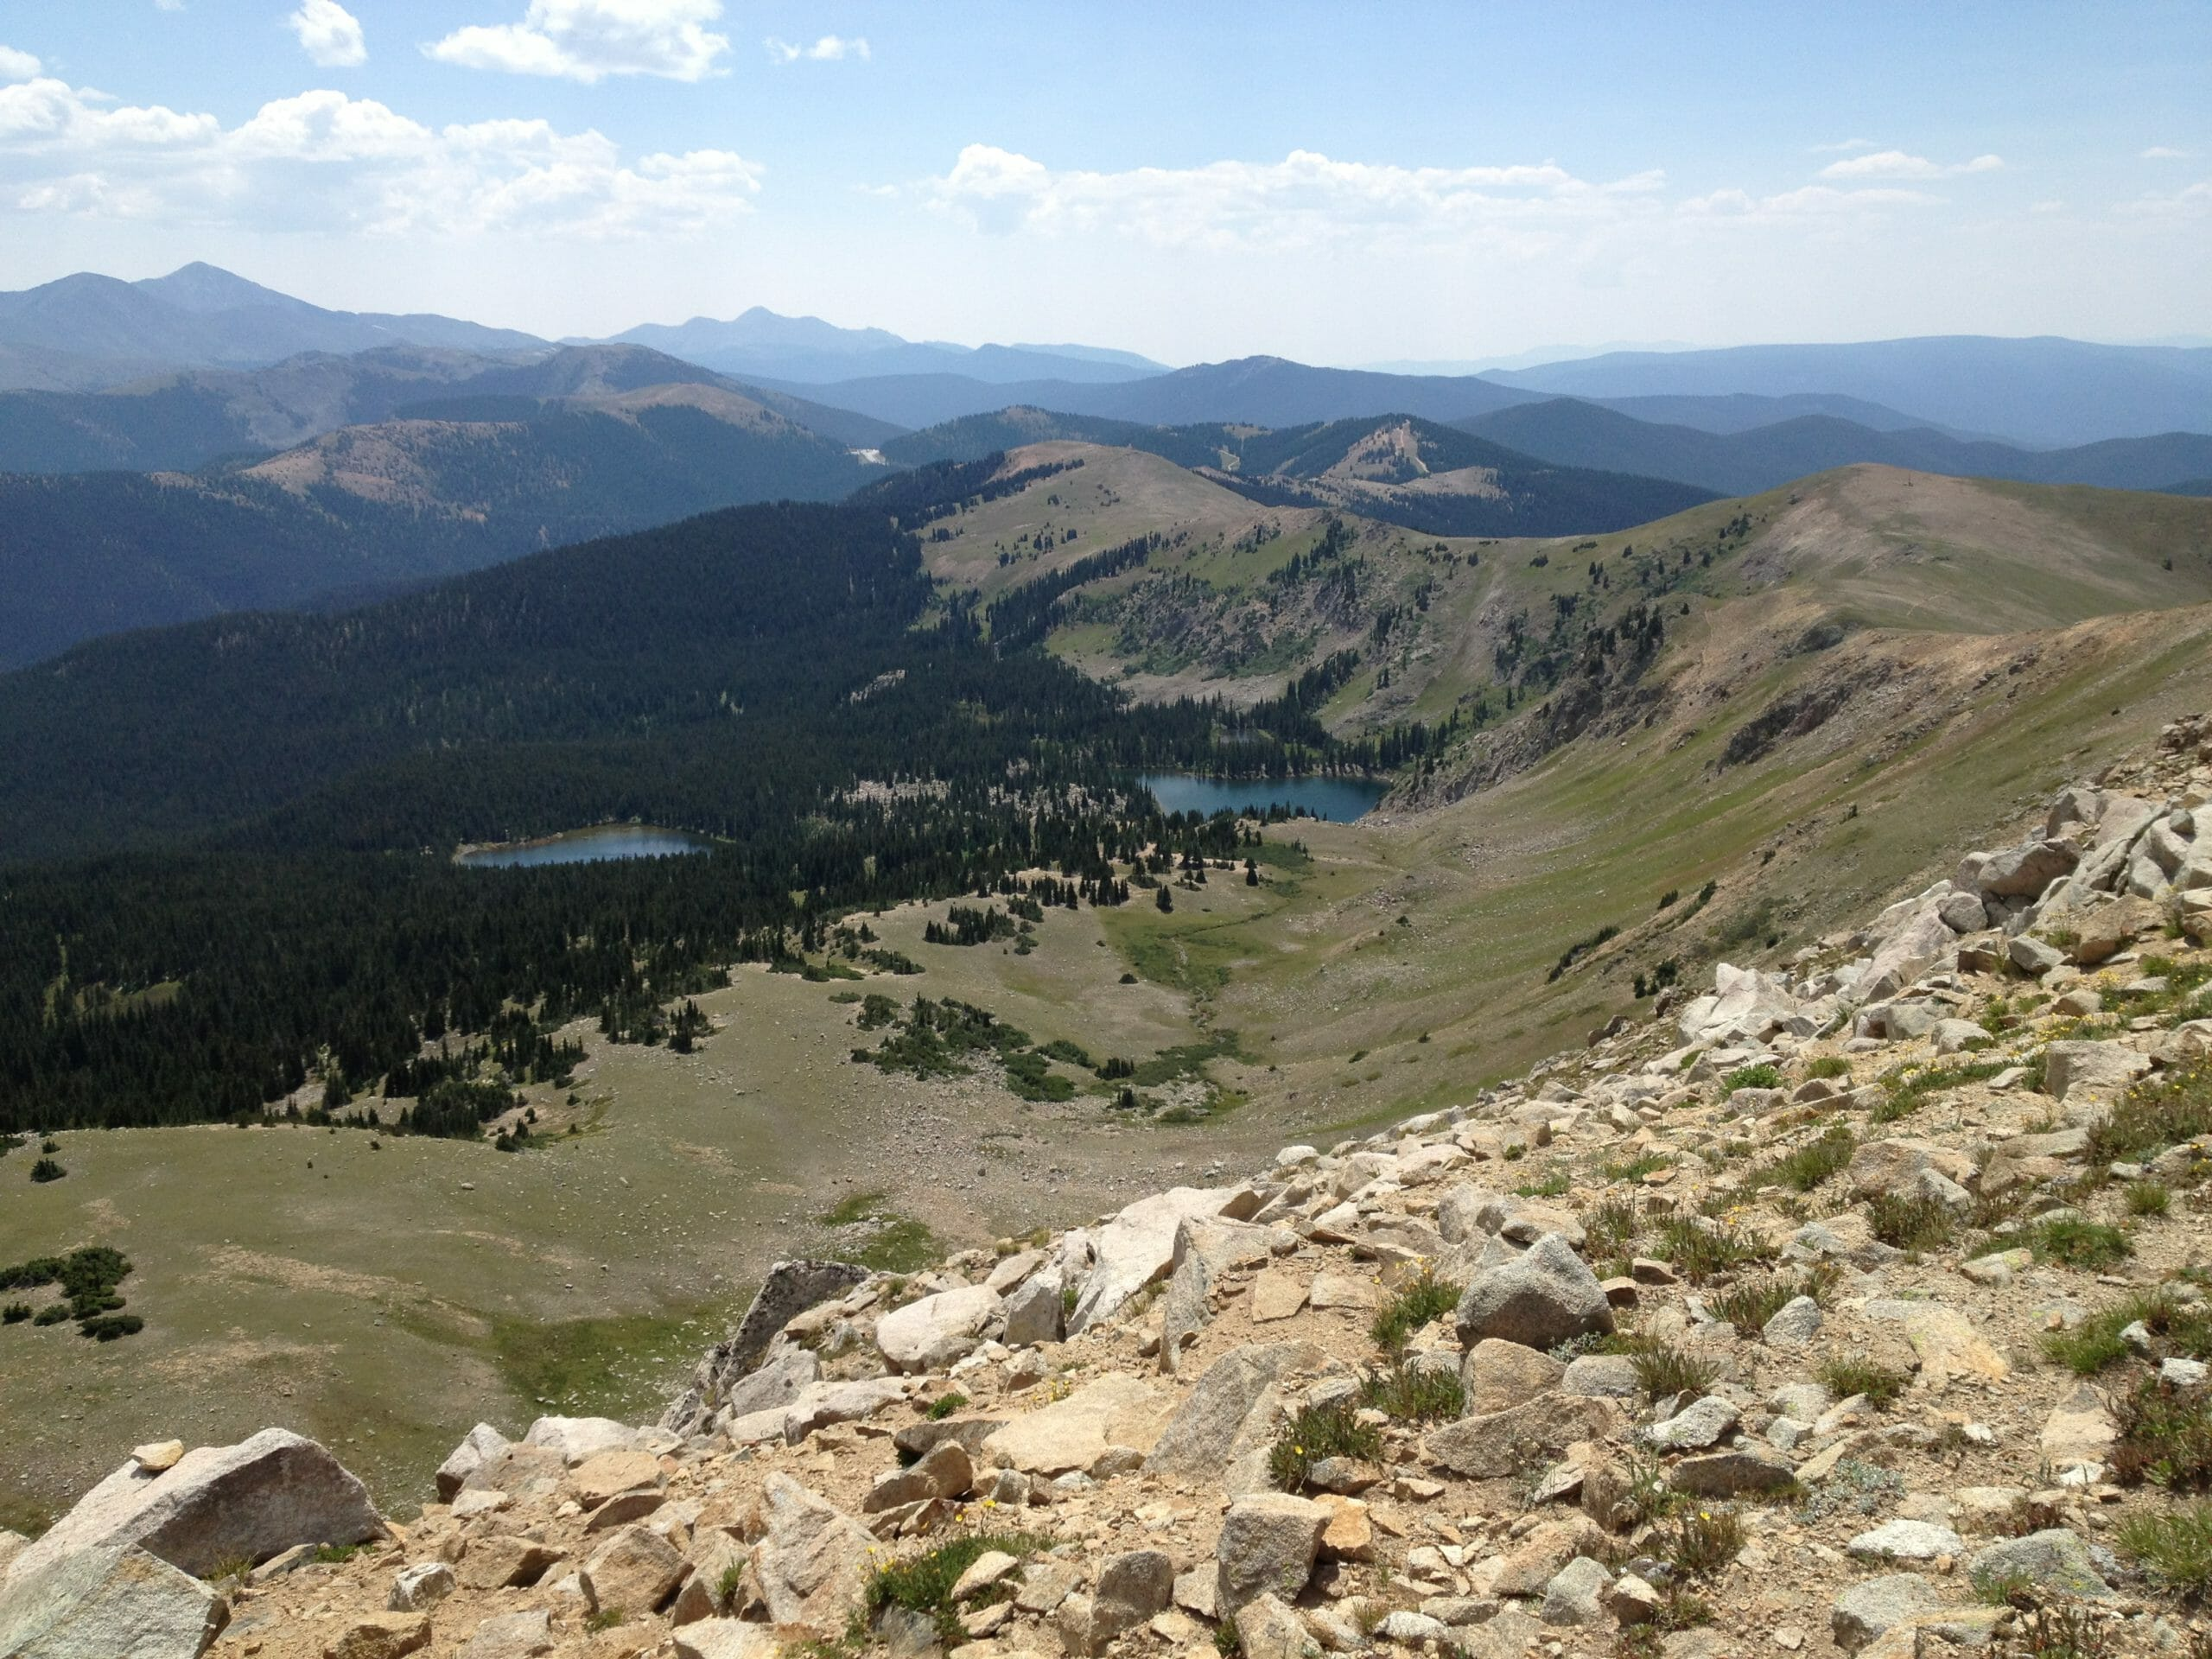 Monarch Pass in the distance.